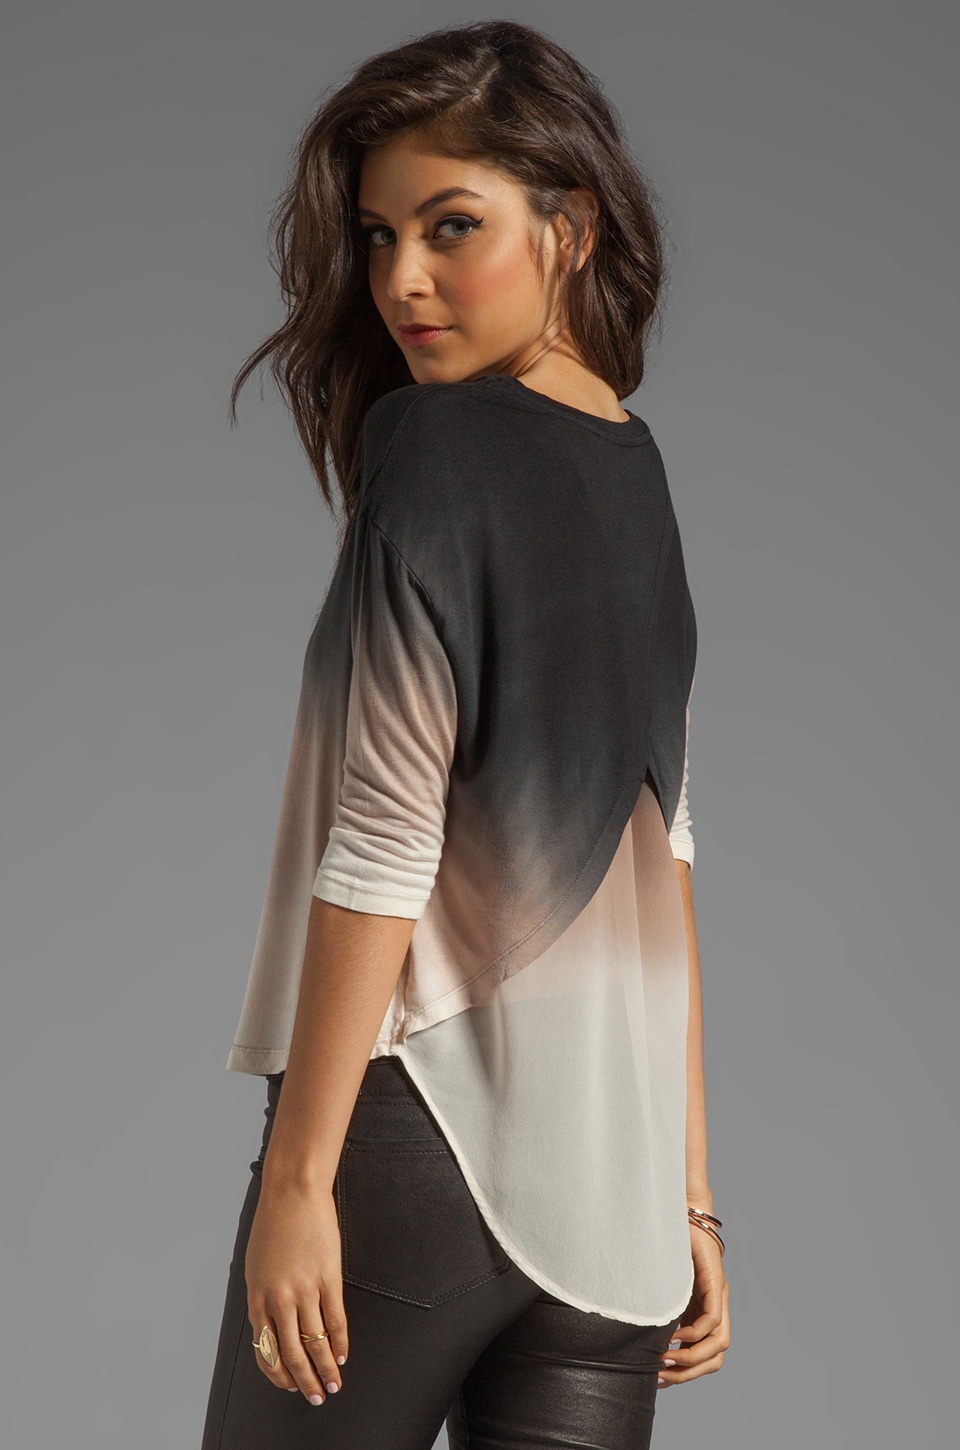 Young, Fabulous & Broke Britt Ombre Top in Black